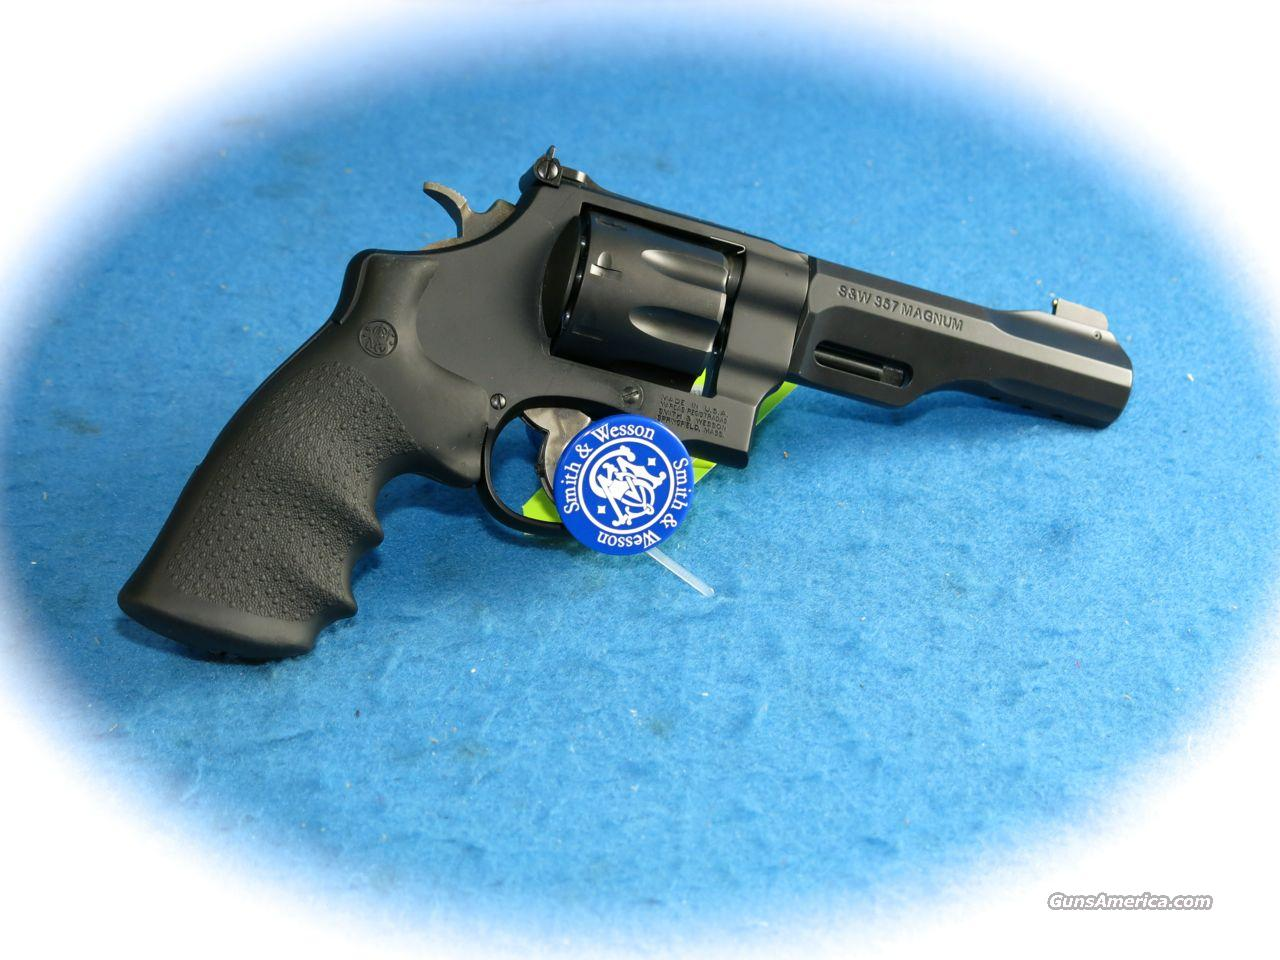 Smith & Wesson Model 327 TRR8 Performance Center .357 Mag 8 Shot Revolver **New**  Guns > Pistols > Smith & Wesson Revolvers > Performance Center